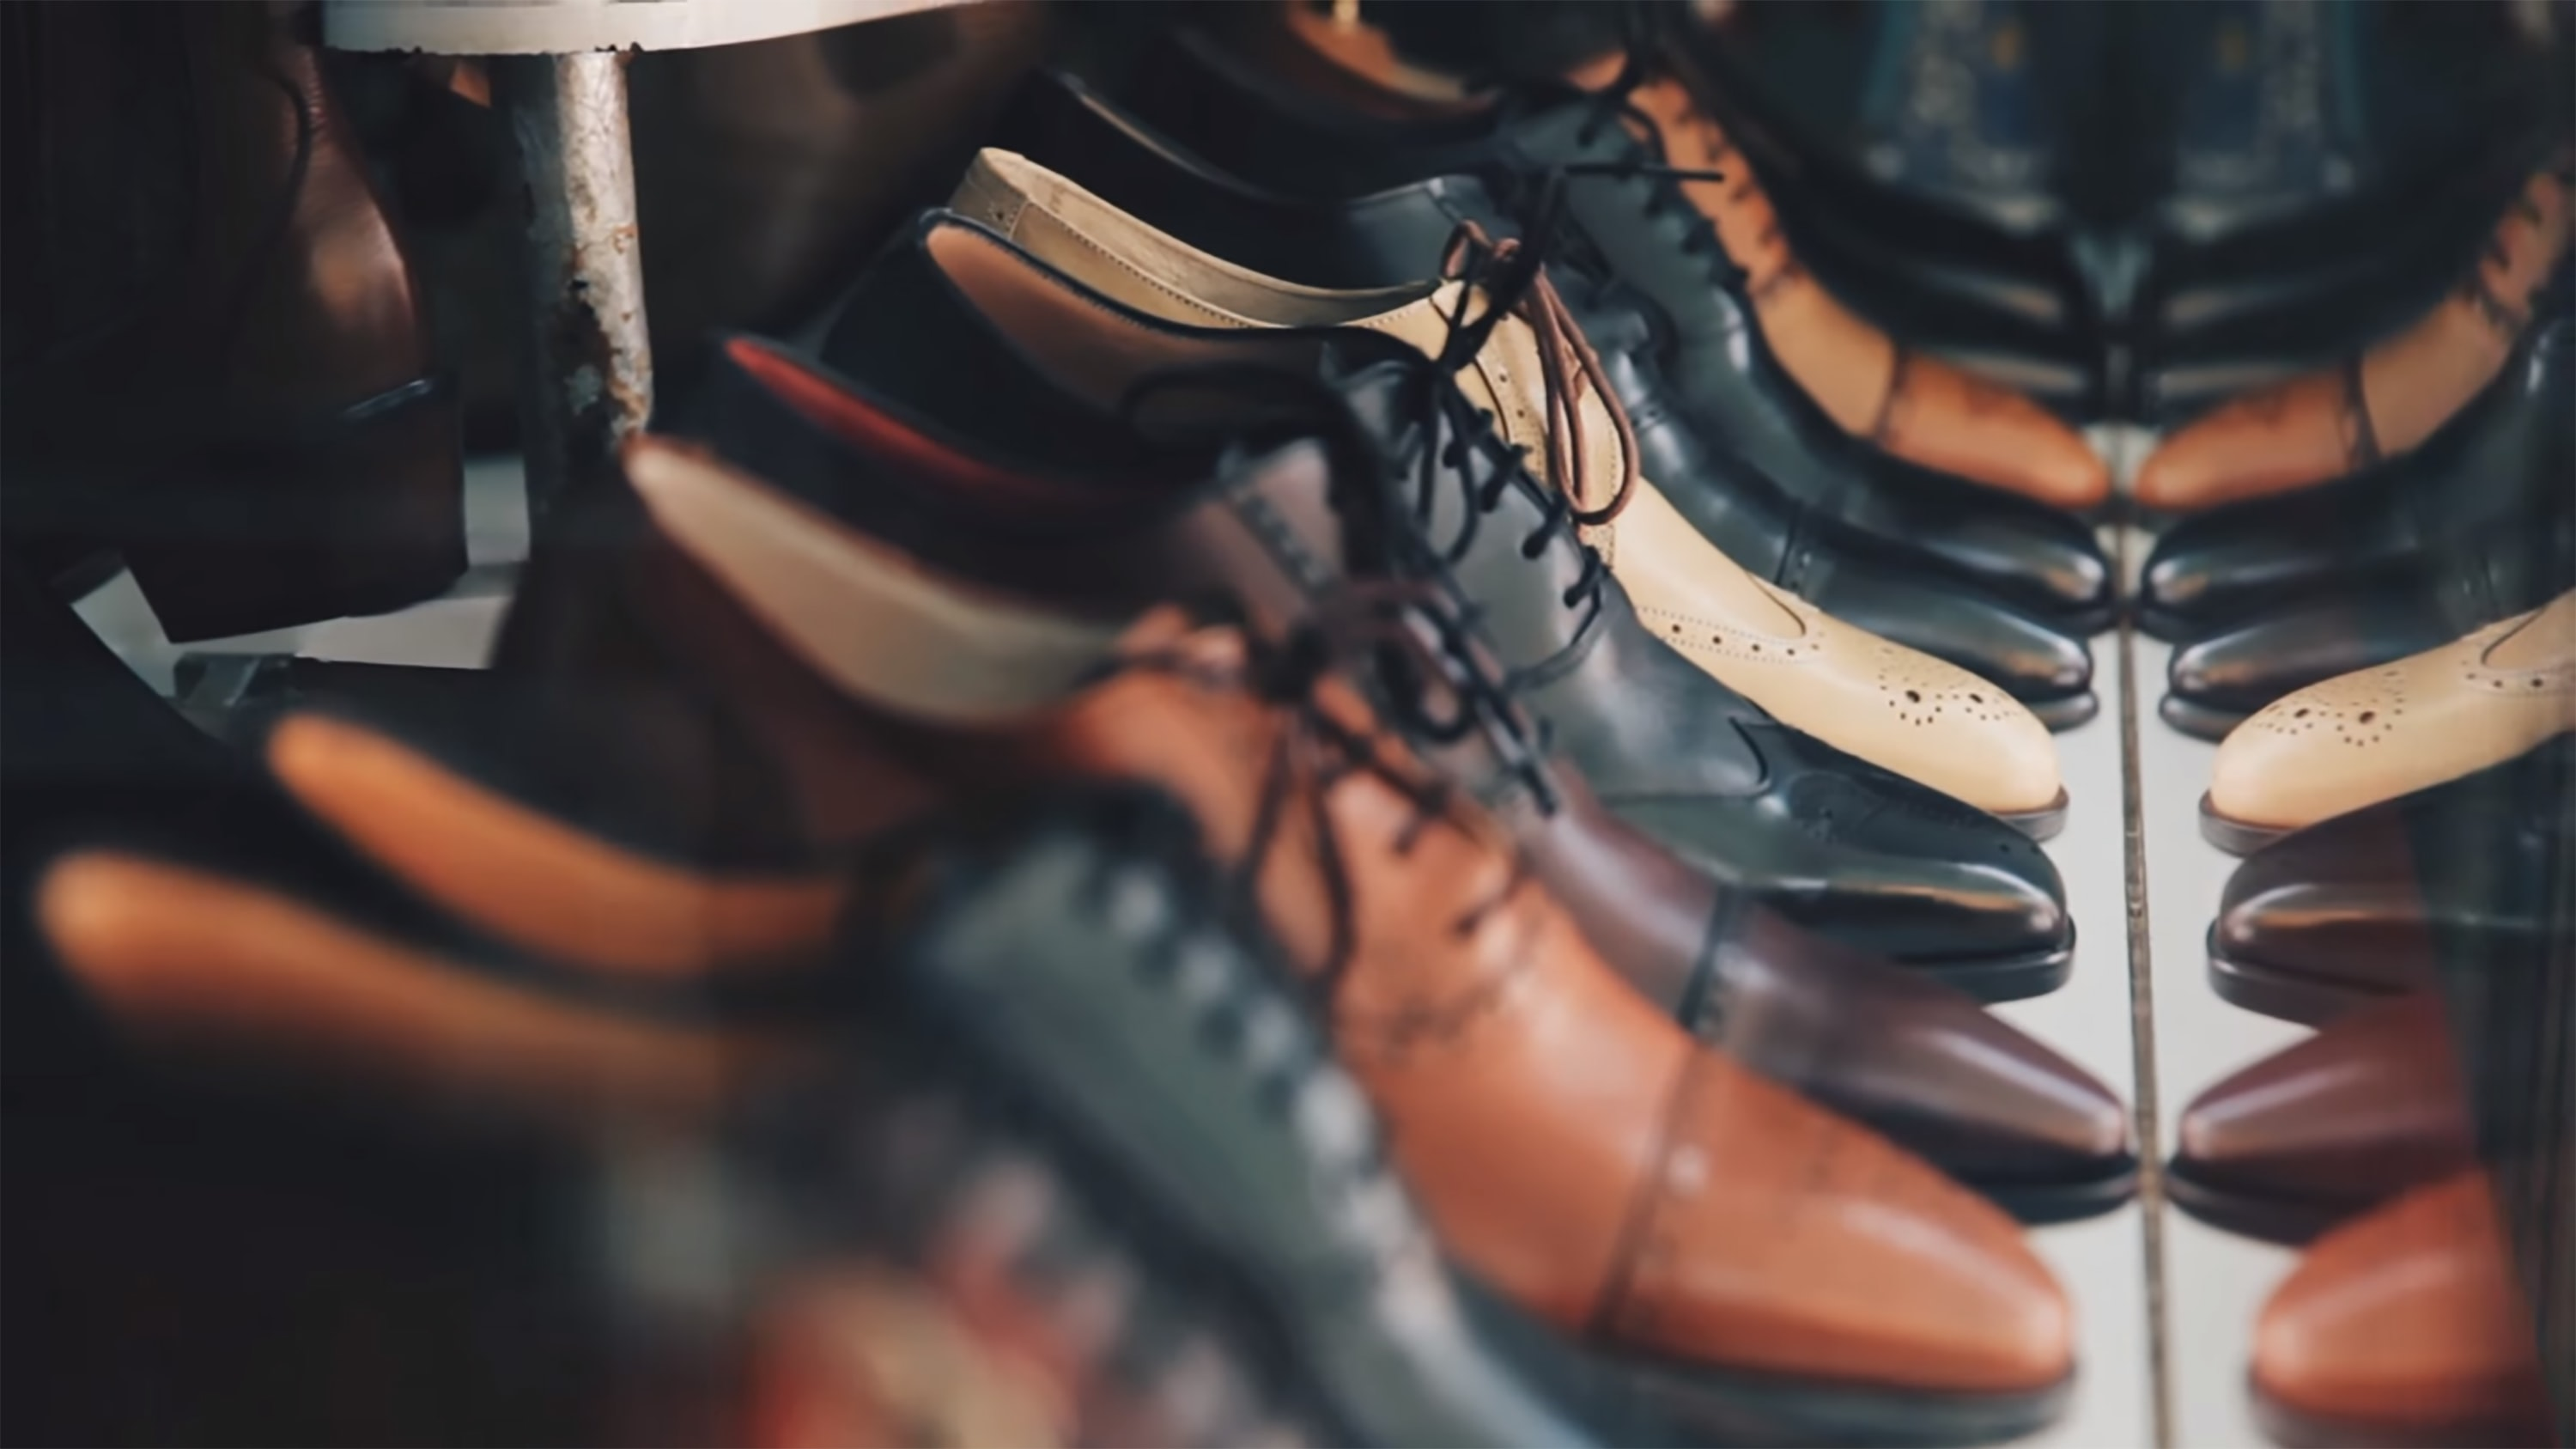 Brown, black, white, and taupe leather dress shoes